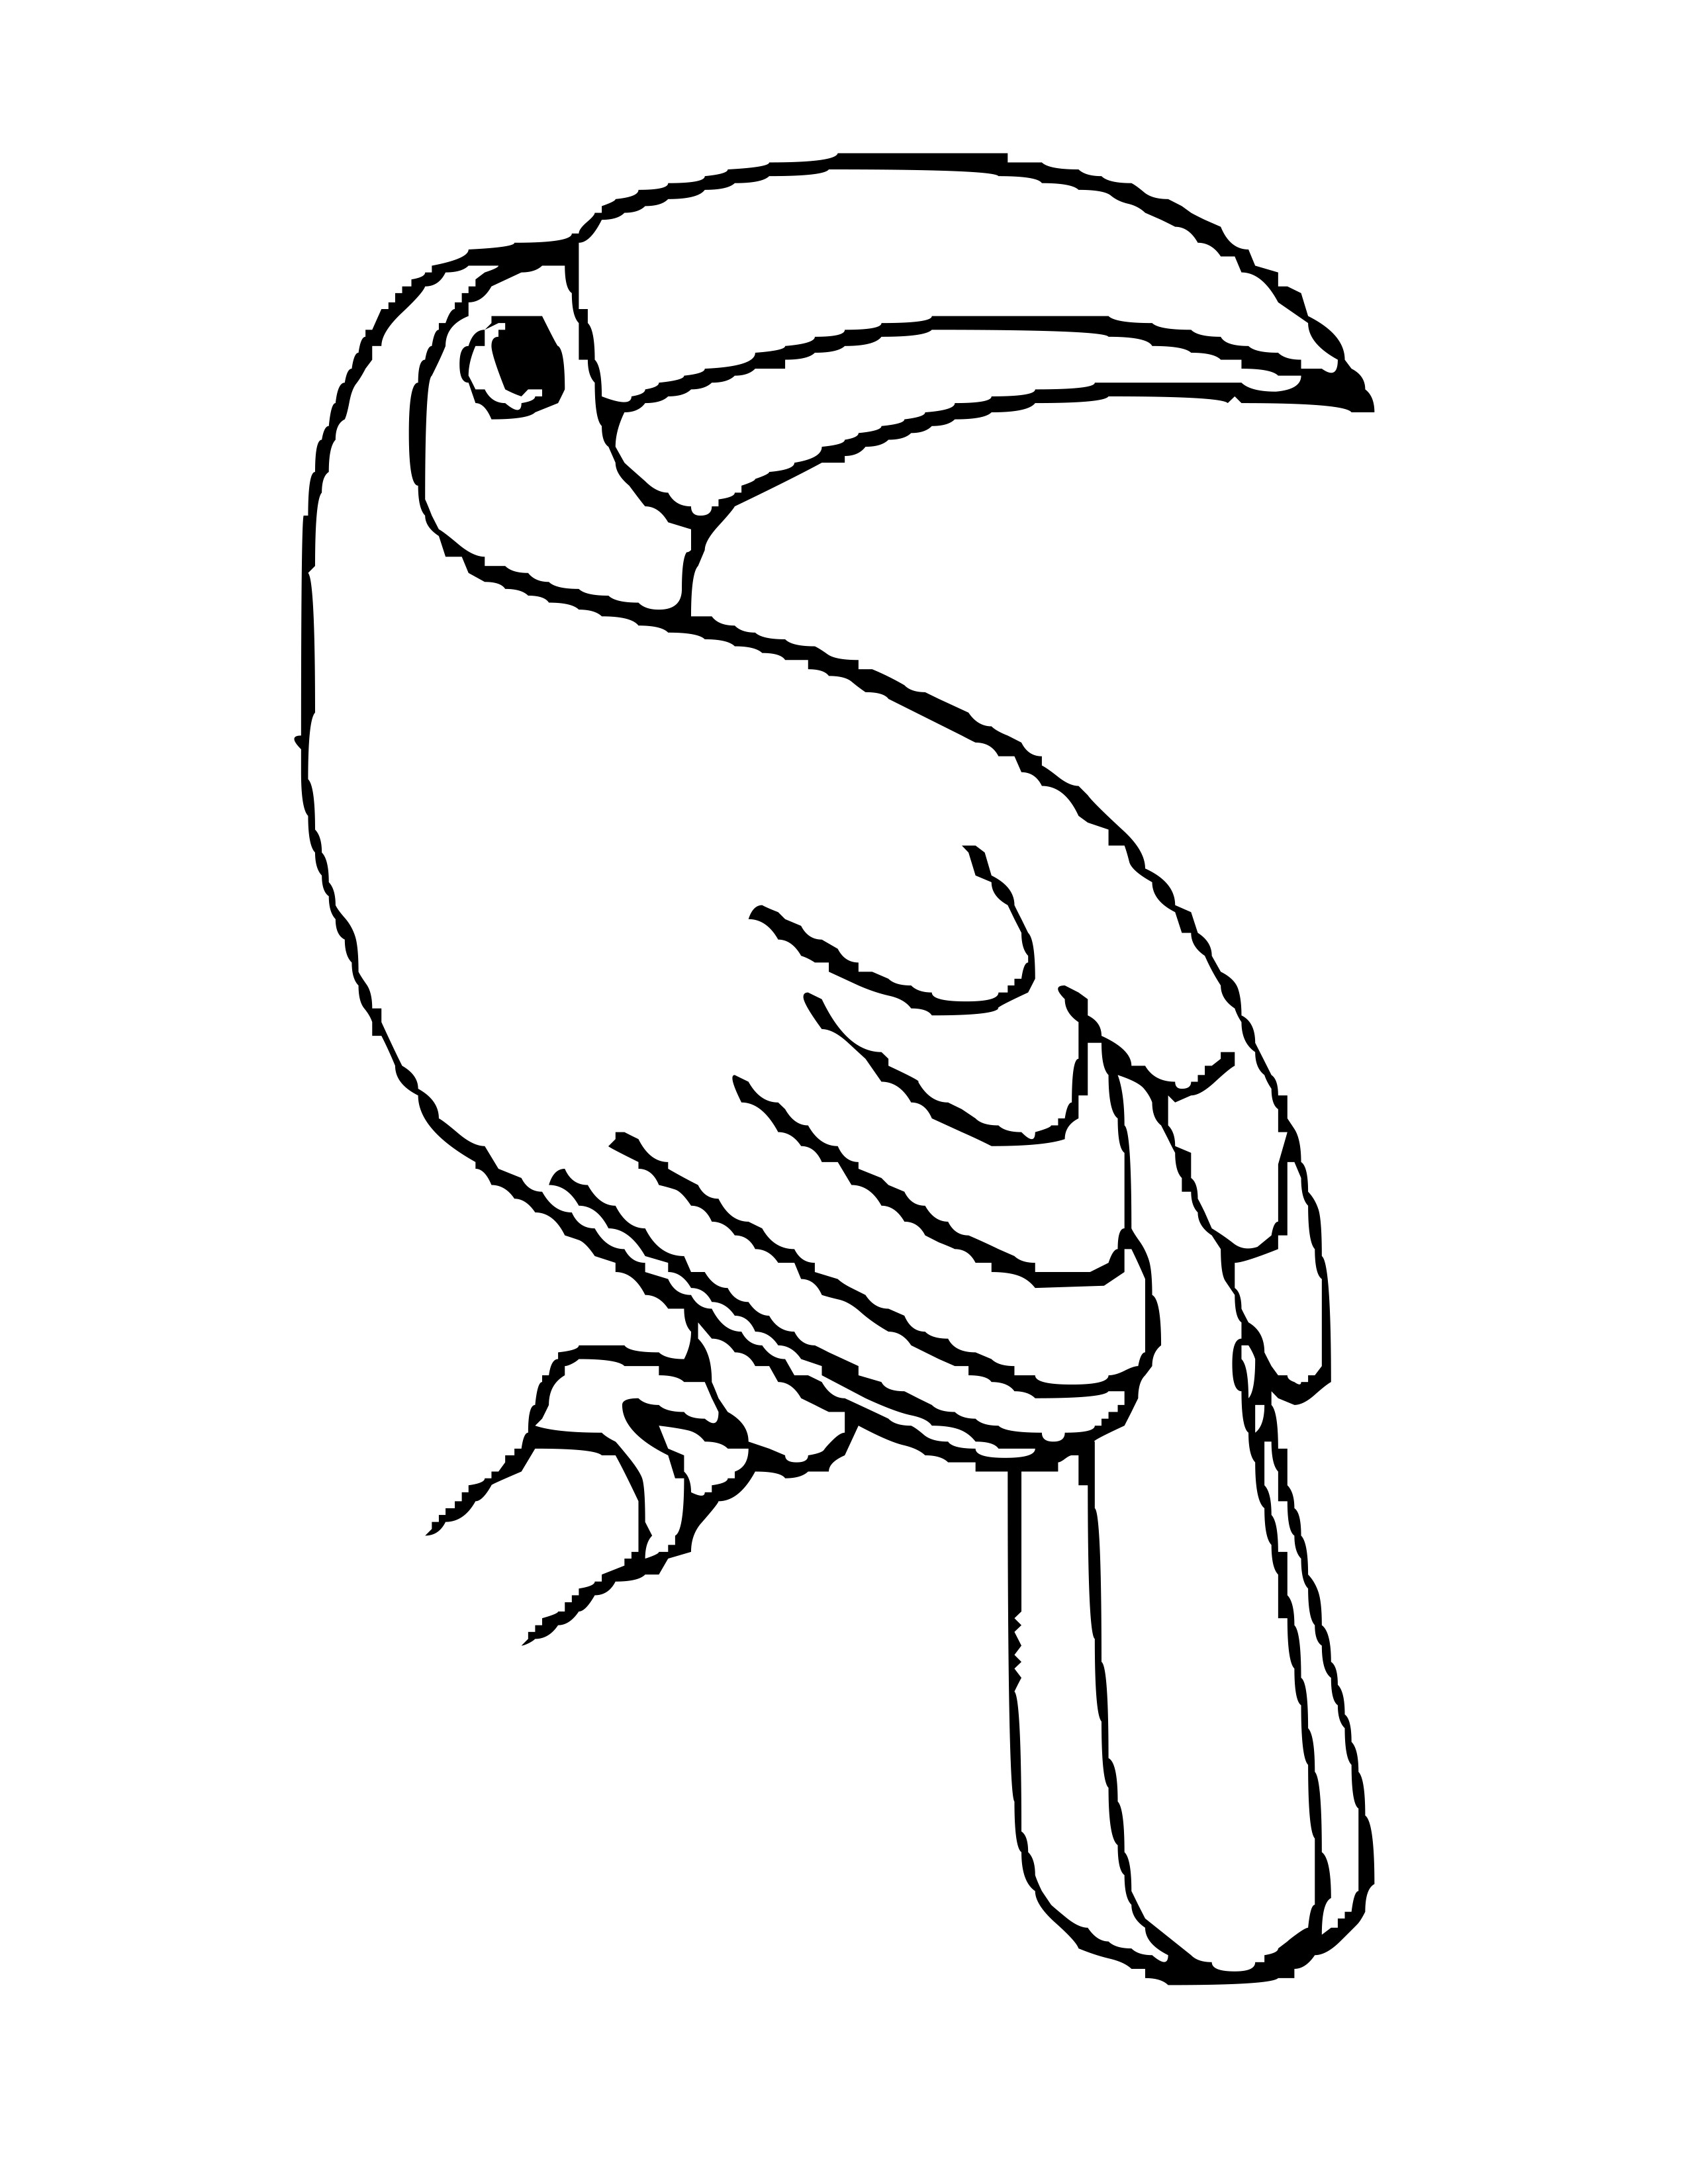 toucan pictures to print toucan sam coloring pages download free coloring books pictures to print toucan